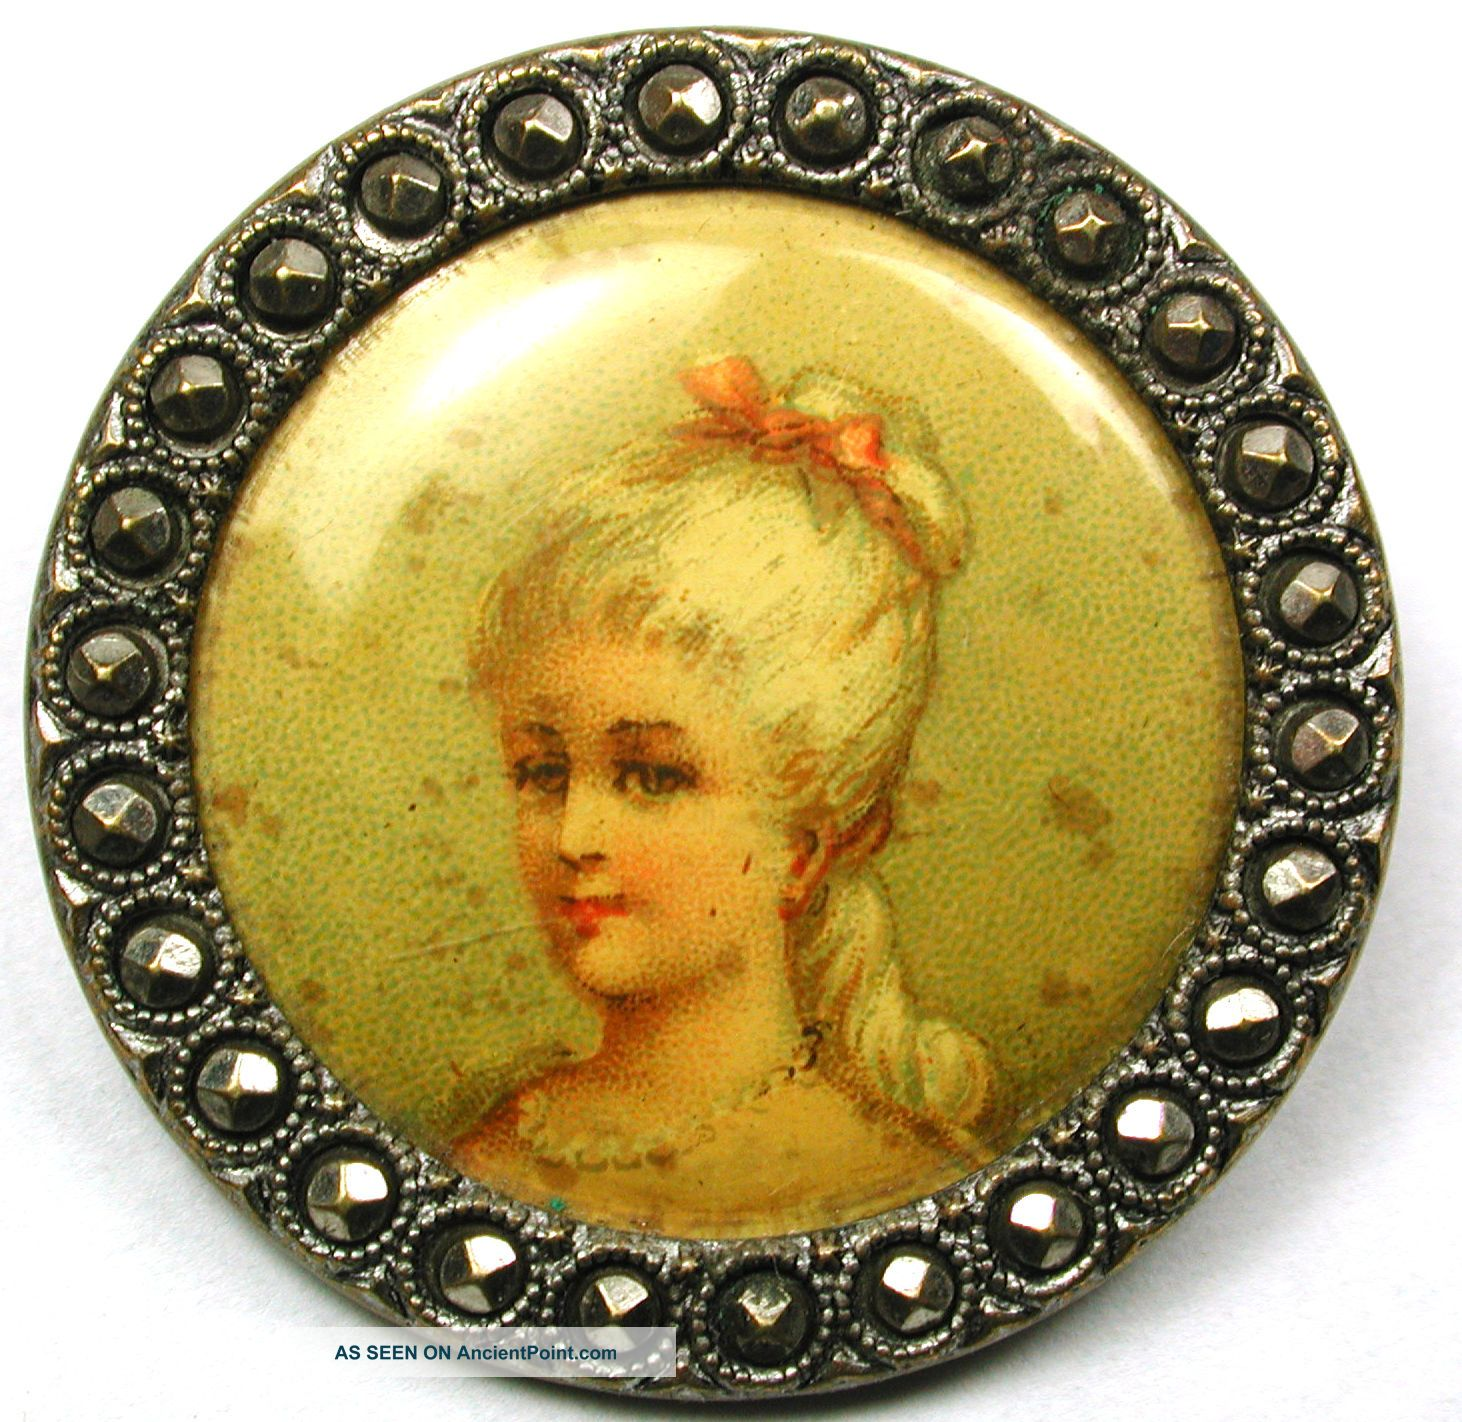 Lg Sz Antique Lithograph Button Pretty Young Woman Design 1 & 1/4